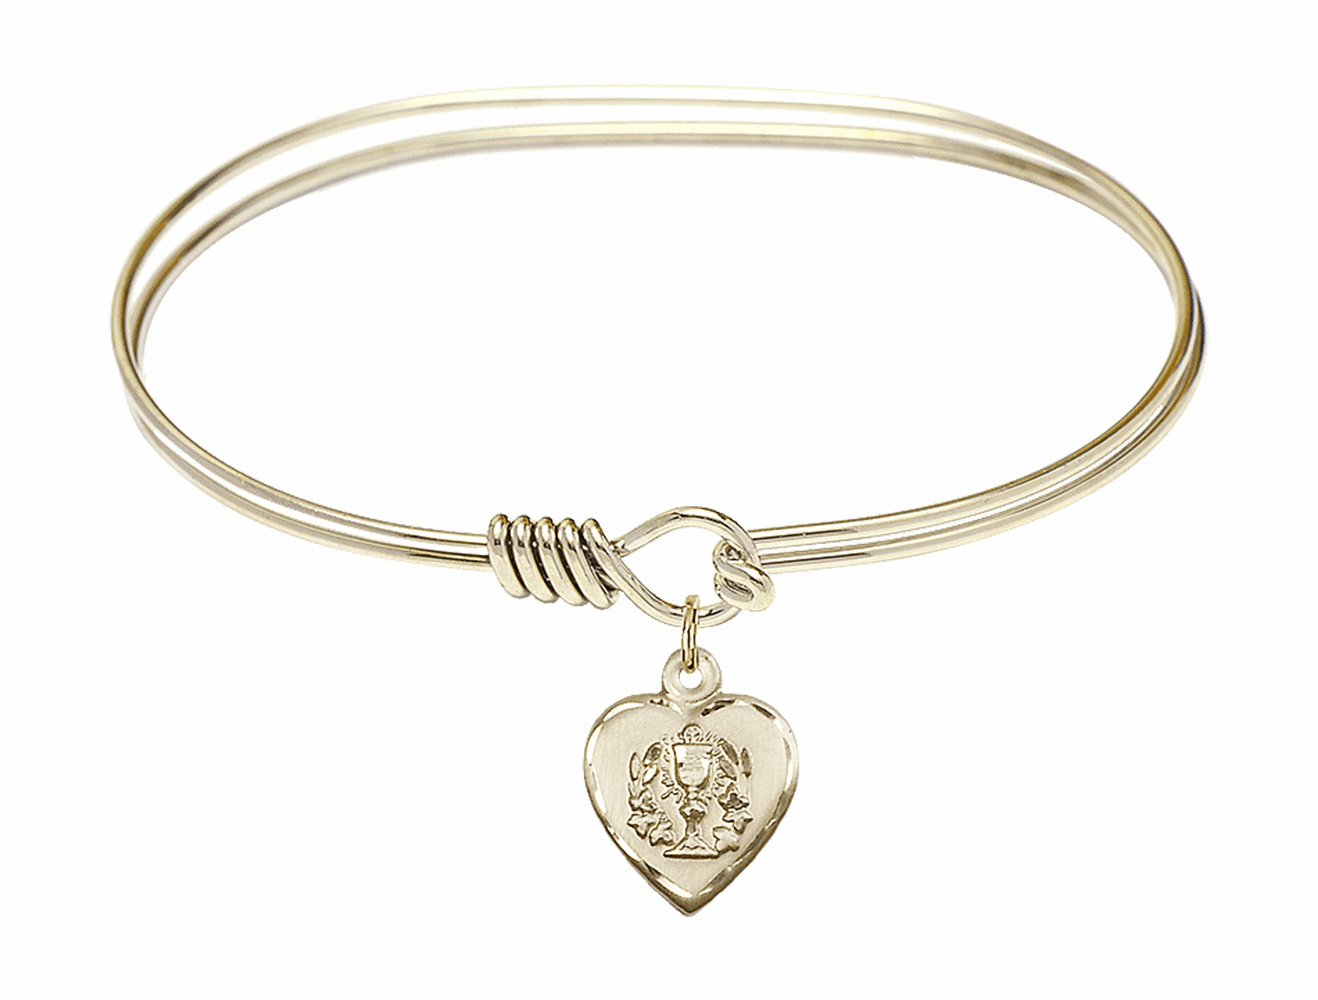 Round Eye Hook Bangle Bracelet w/Confirmation Heart Charm by Bliss Mfg